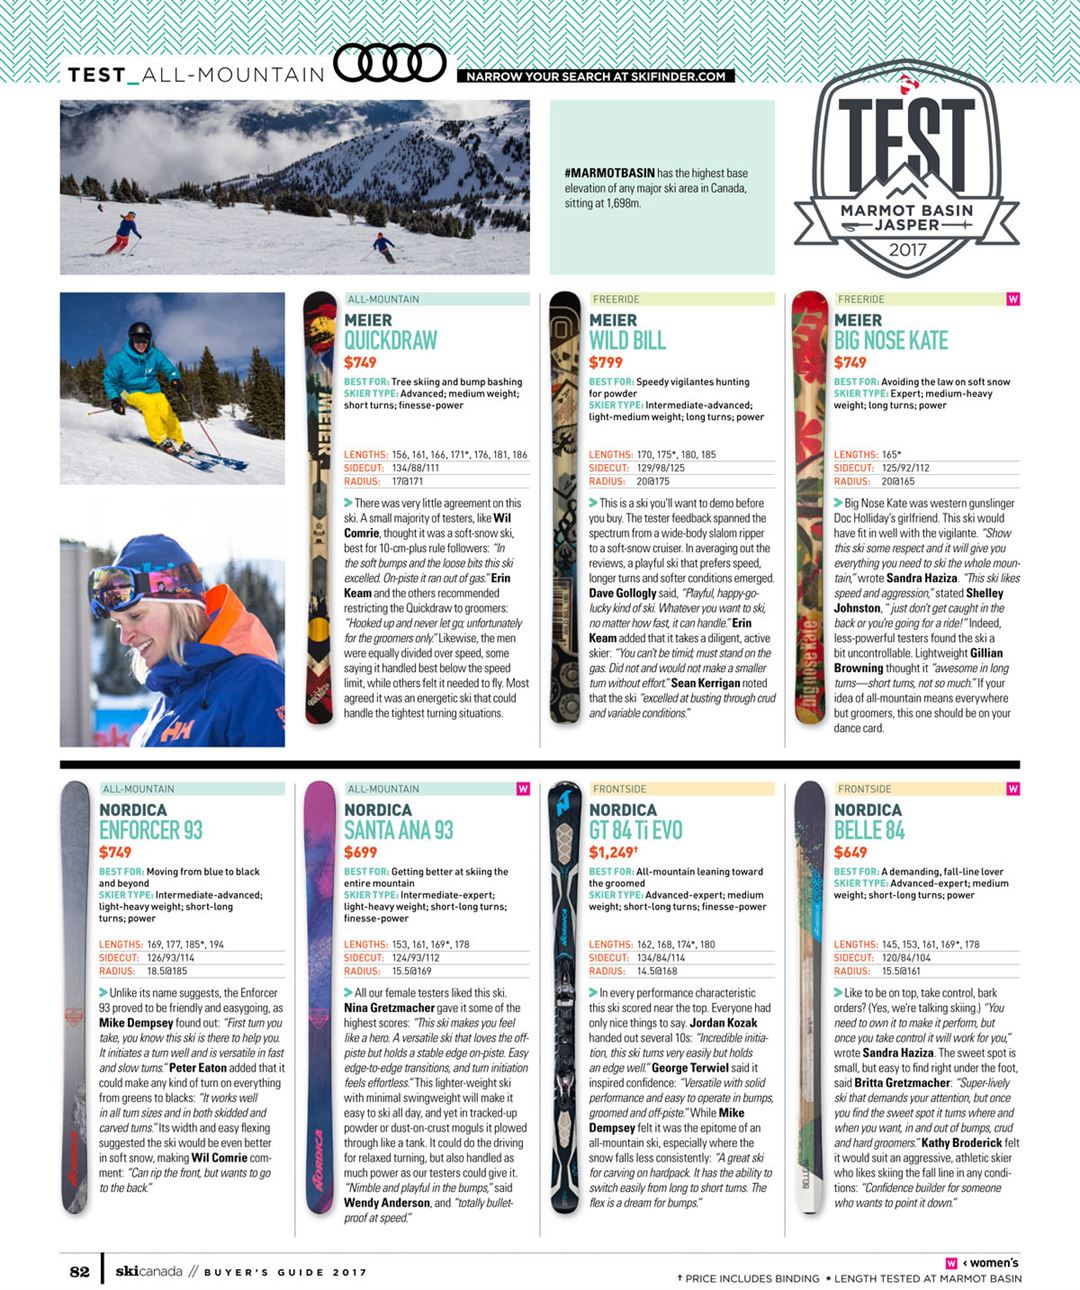 All-Mountain Test 2017/ Ski Canada Magazine